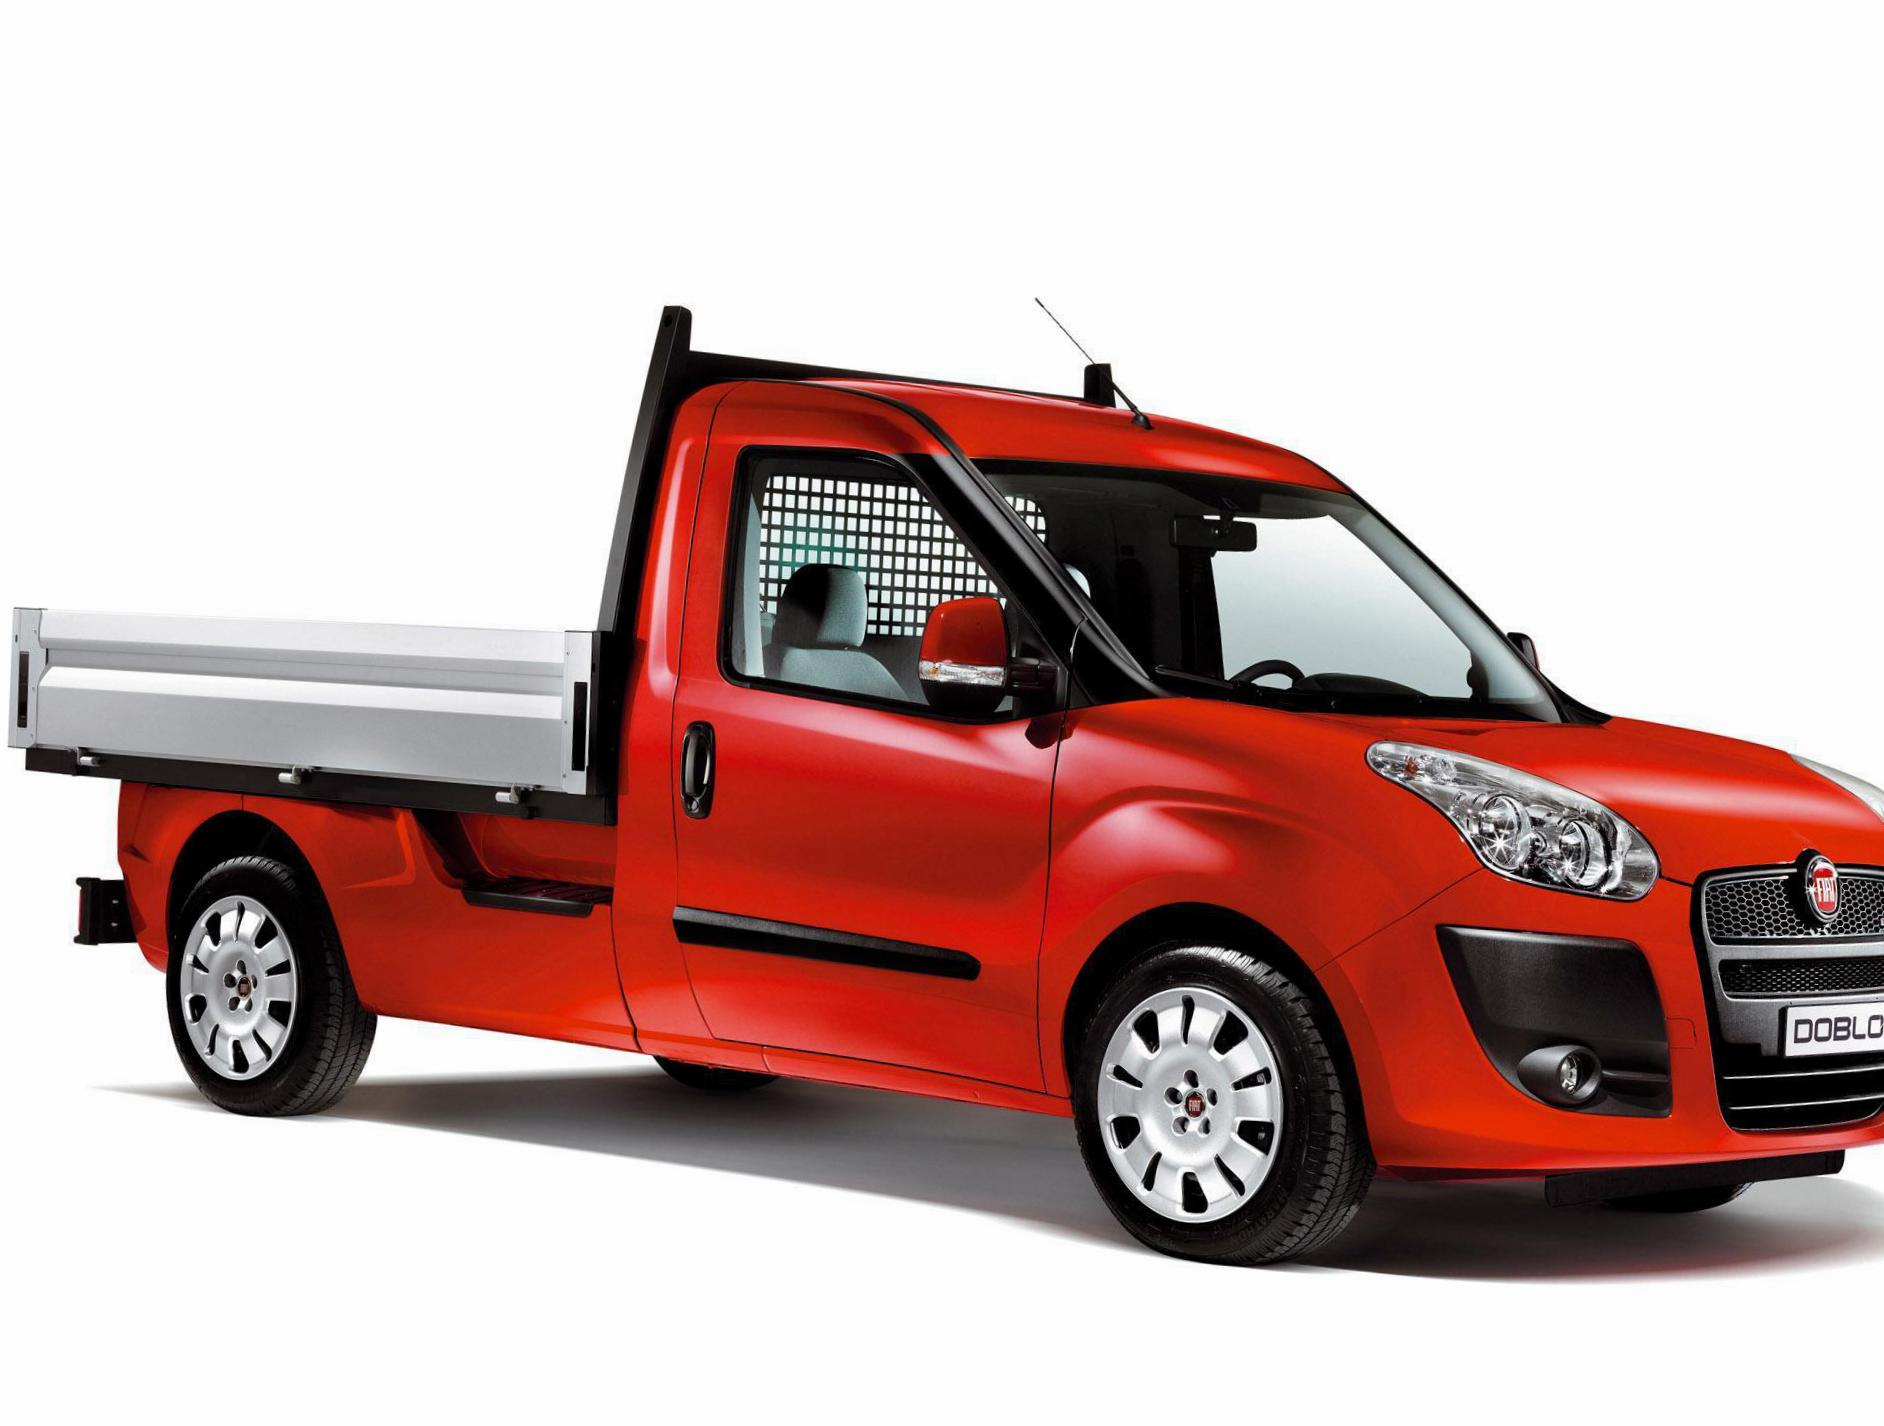 Fiat Doblo Panorama prices 2012